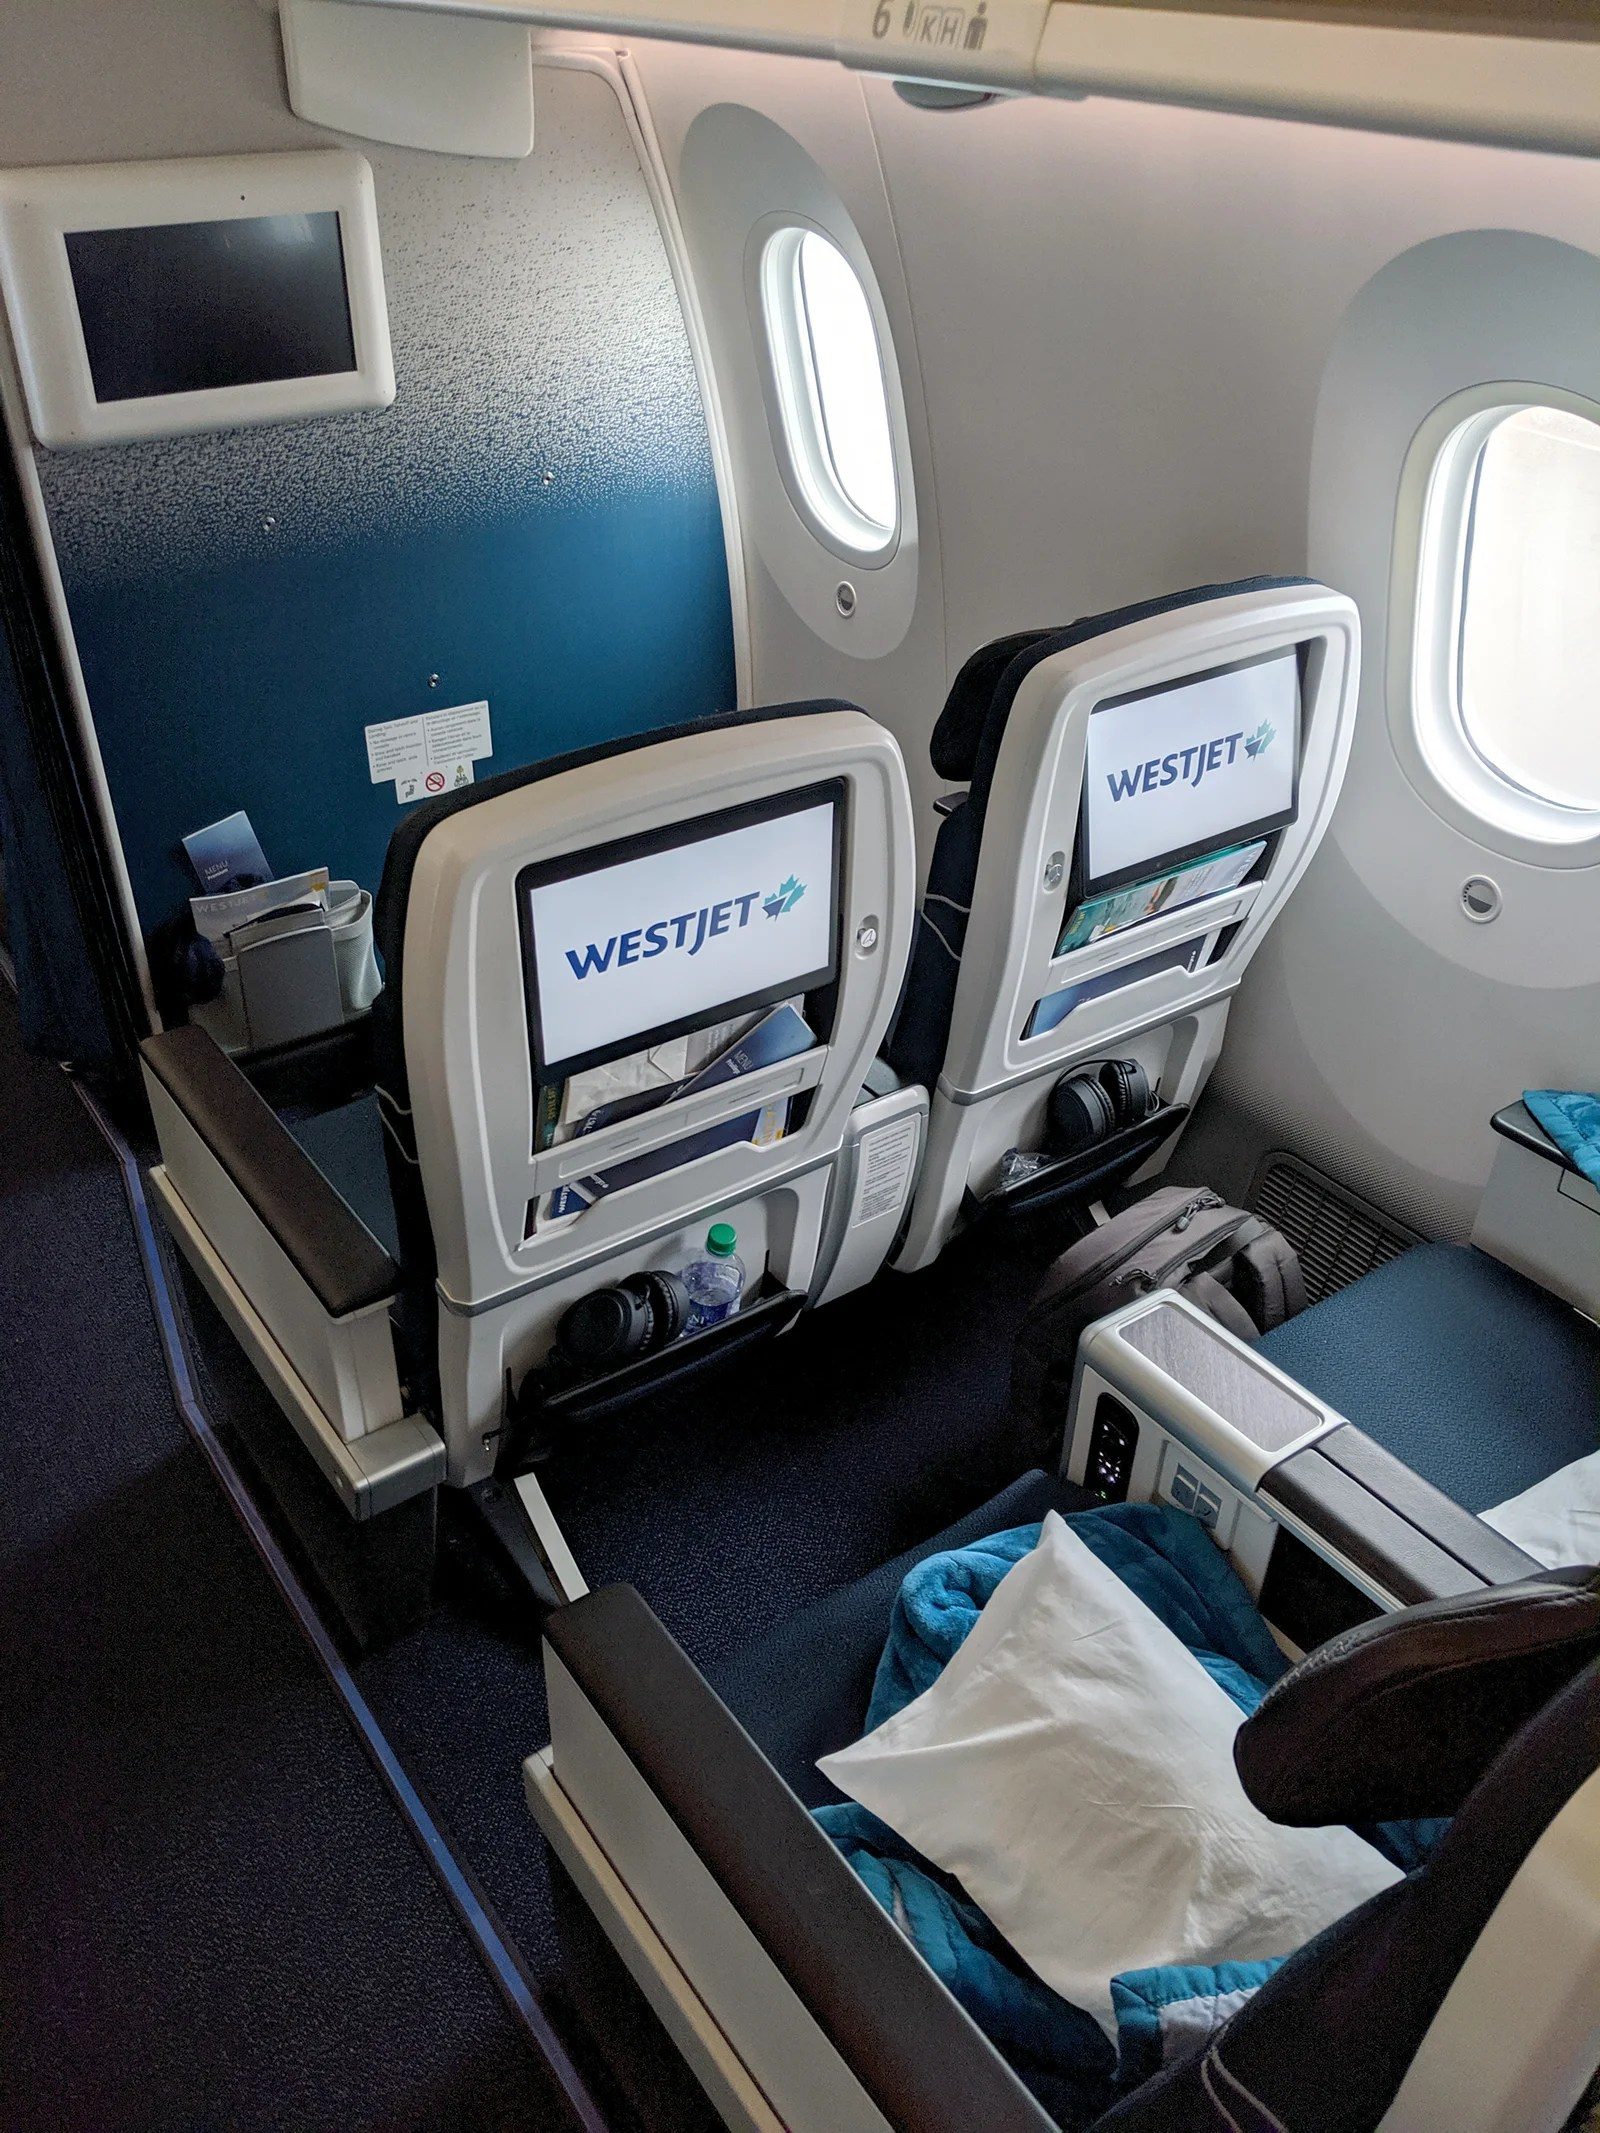 Really premium economy: A review of WestJet Premium from Toronto to London on the 787